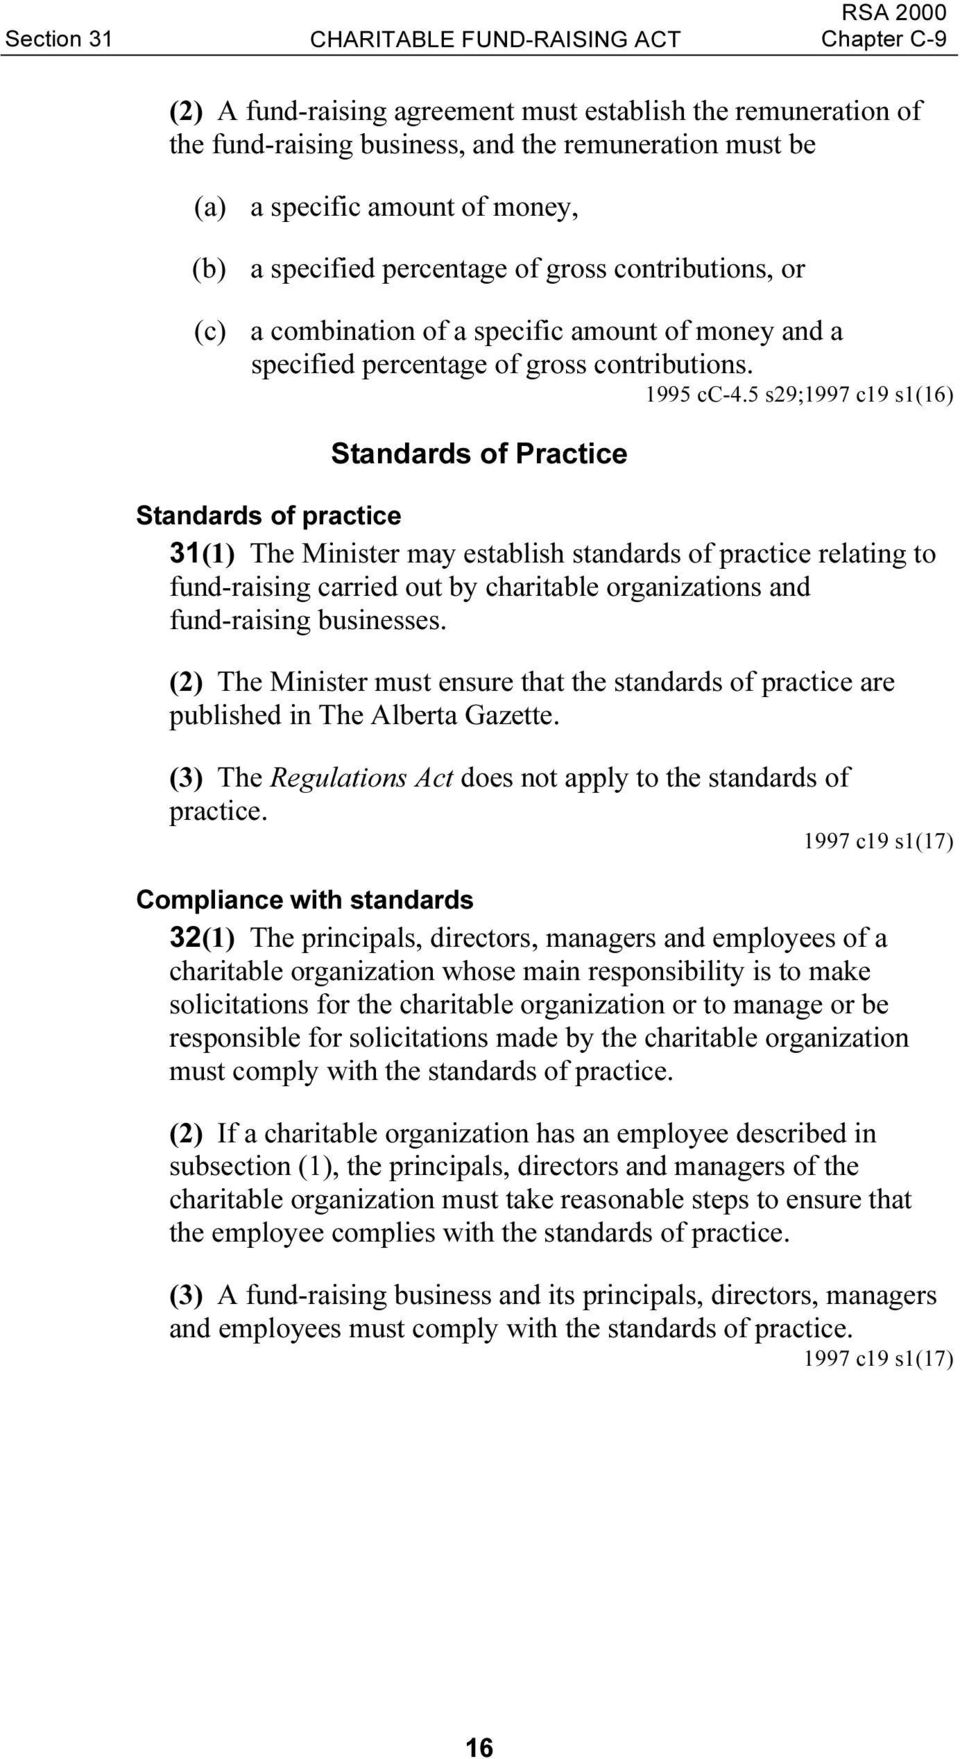 5 s29;1997 c19 s1(16) Standards of Practice Standards of practice 31(1) The Minister may establish standards of practice relating to fund-raising carried out by charitable organizations and